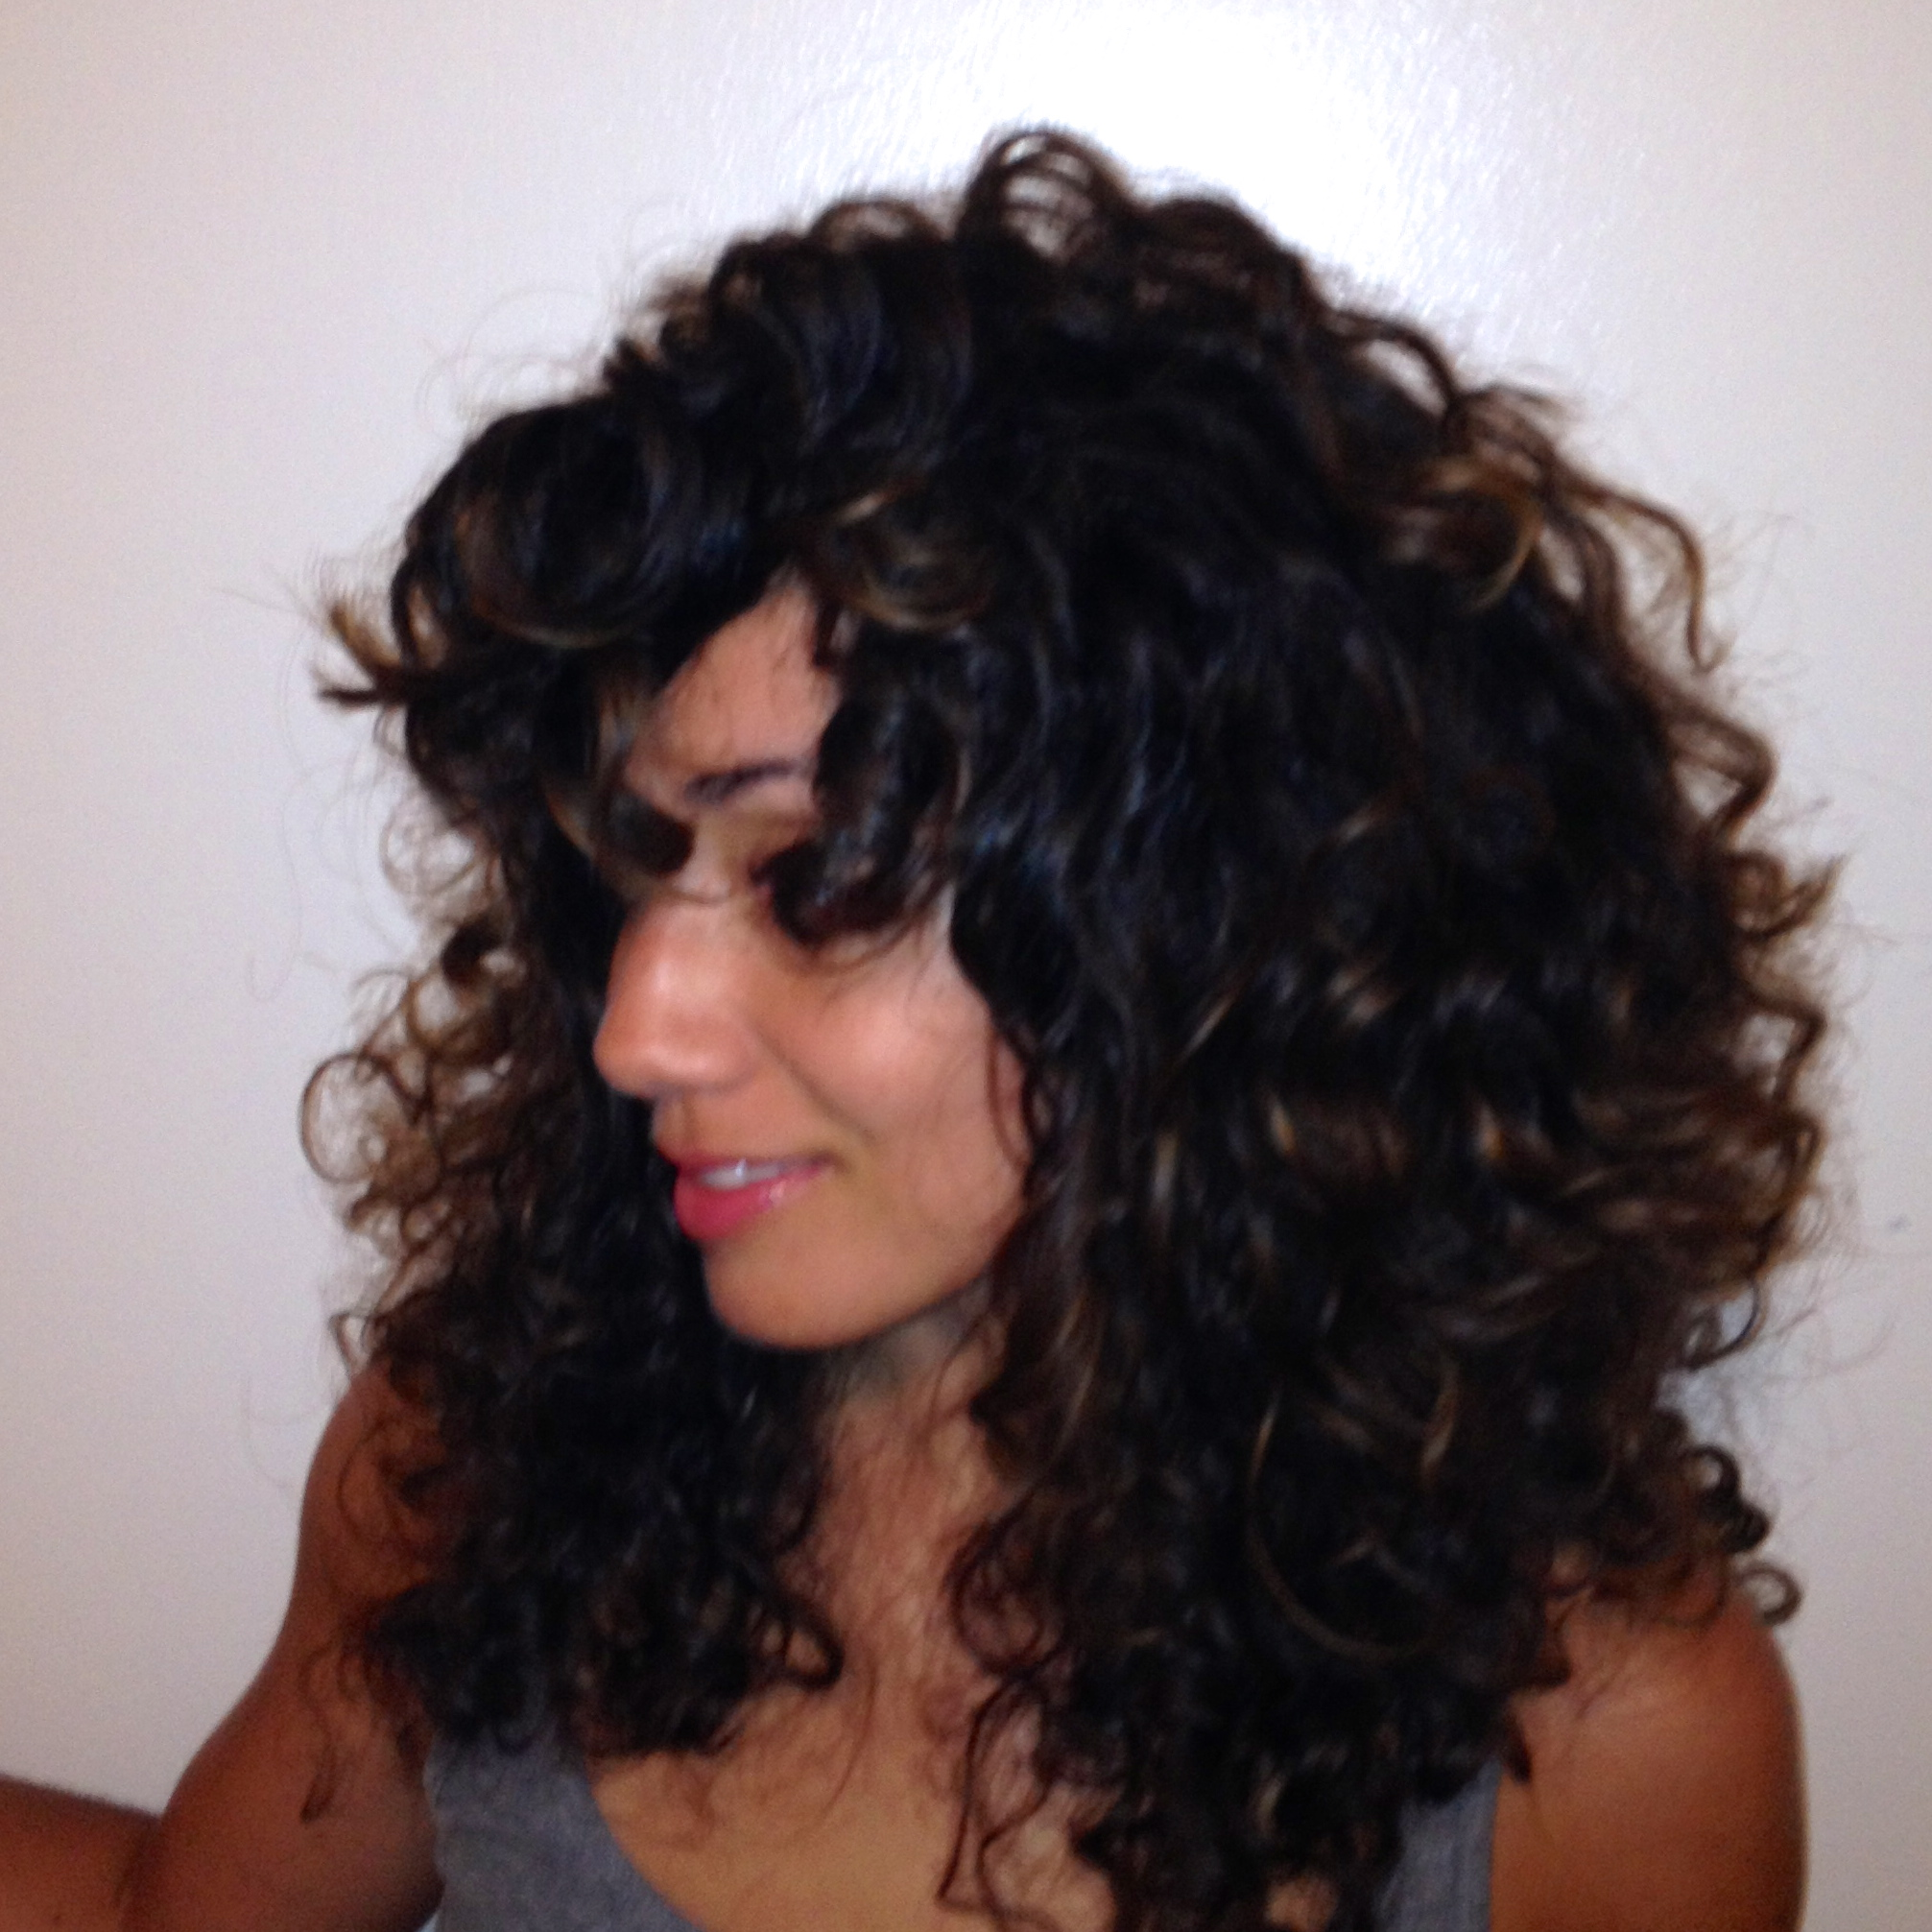 how to fix bed head for curly hair